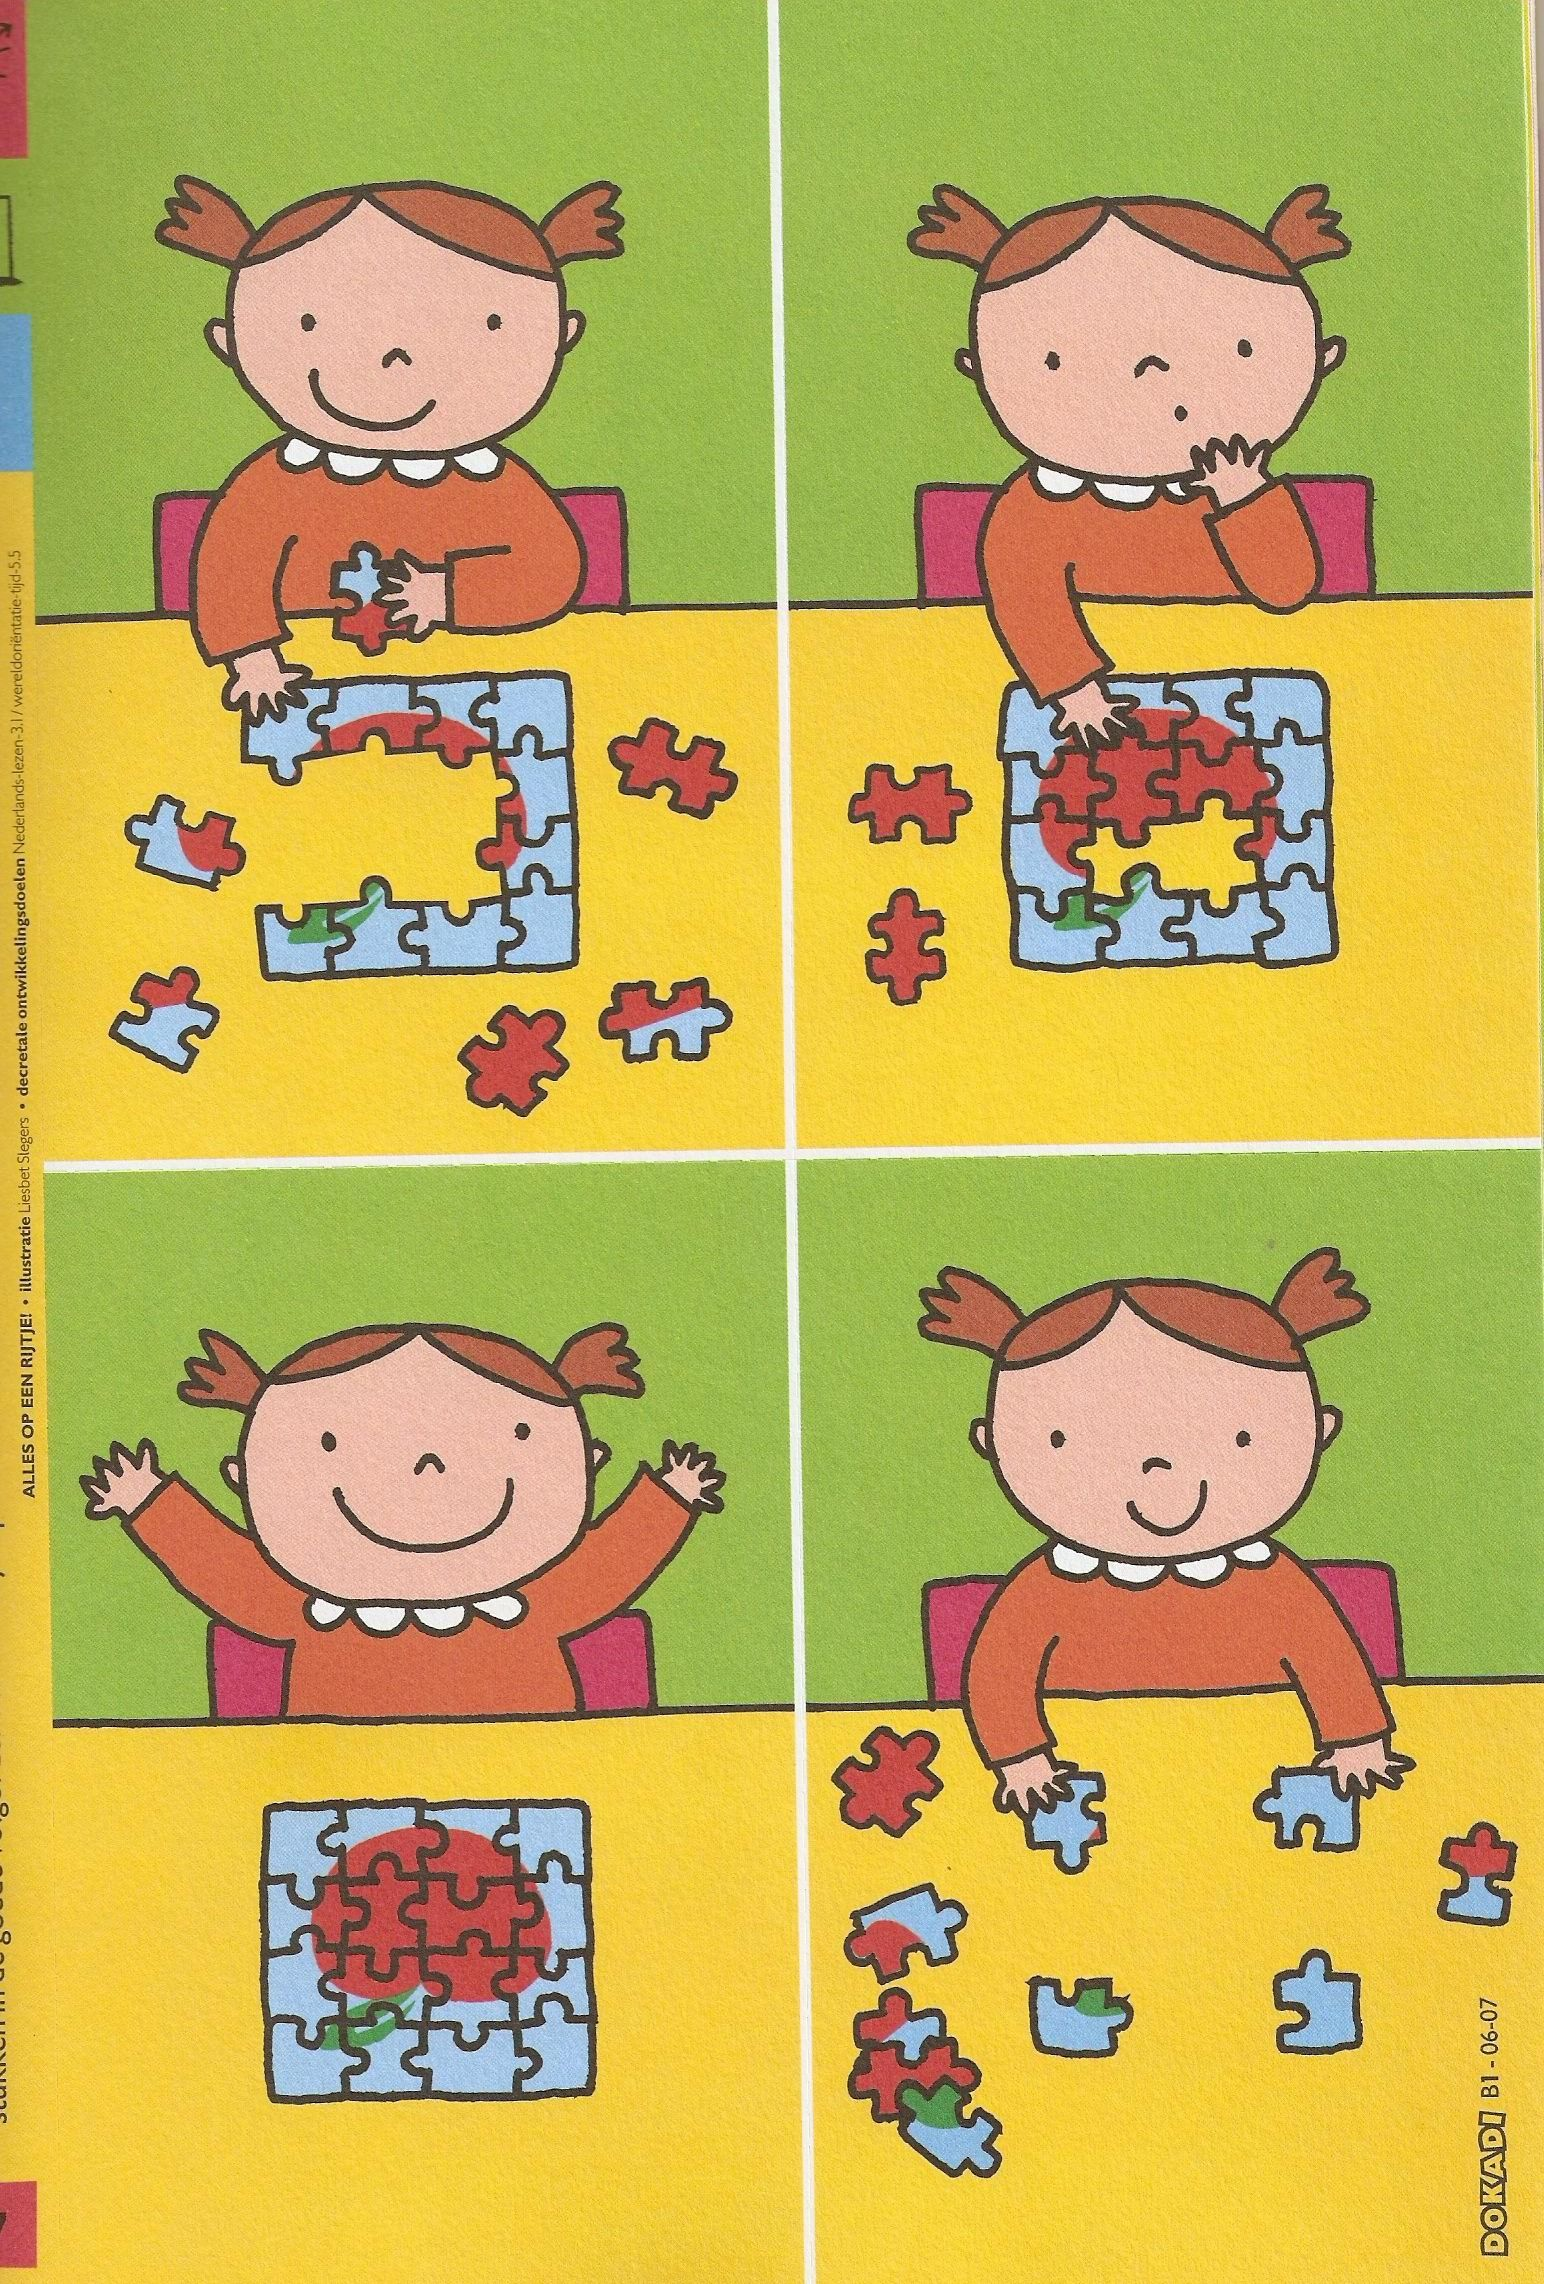 Stappenplan puzzelen | Sequence | Pinterest | Visible learning ...